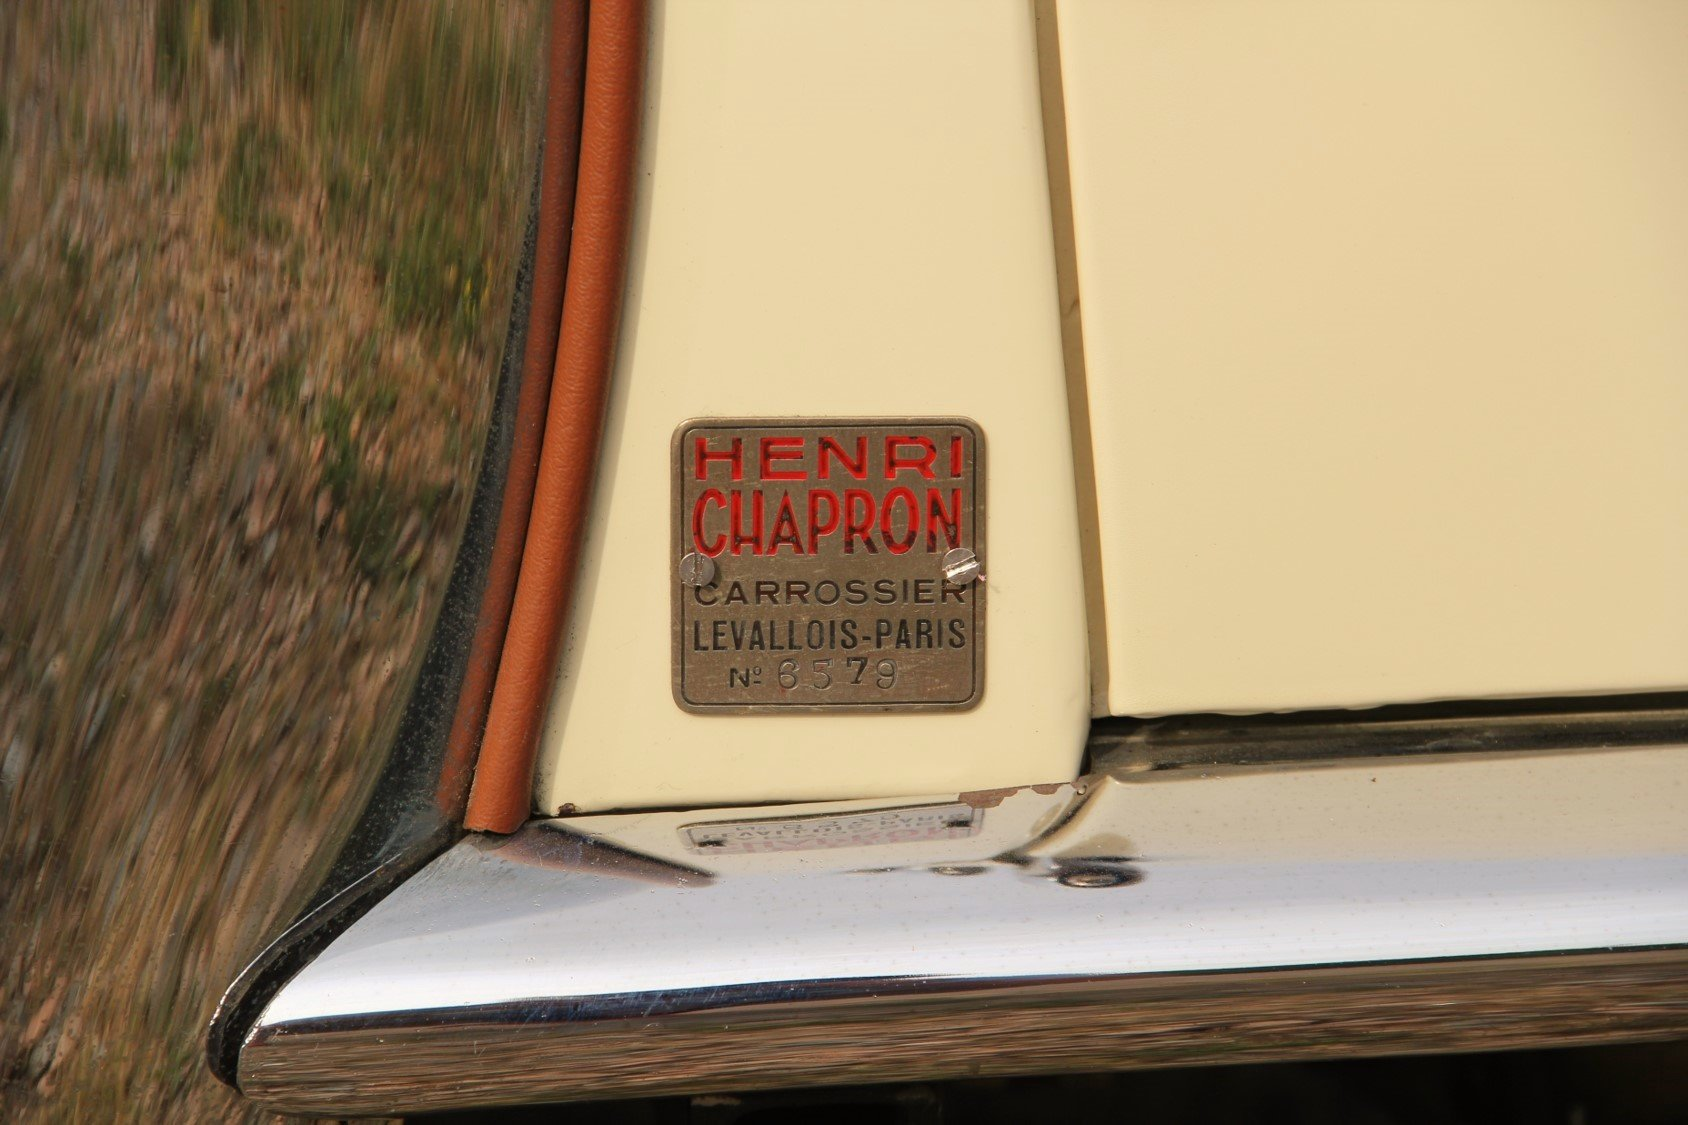 1948 Delahaye 135M Cabriolet by Henri Chapron For Sale by Auction (picture 6 of 6)